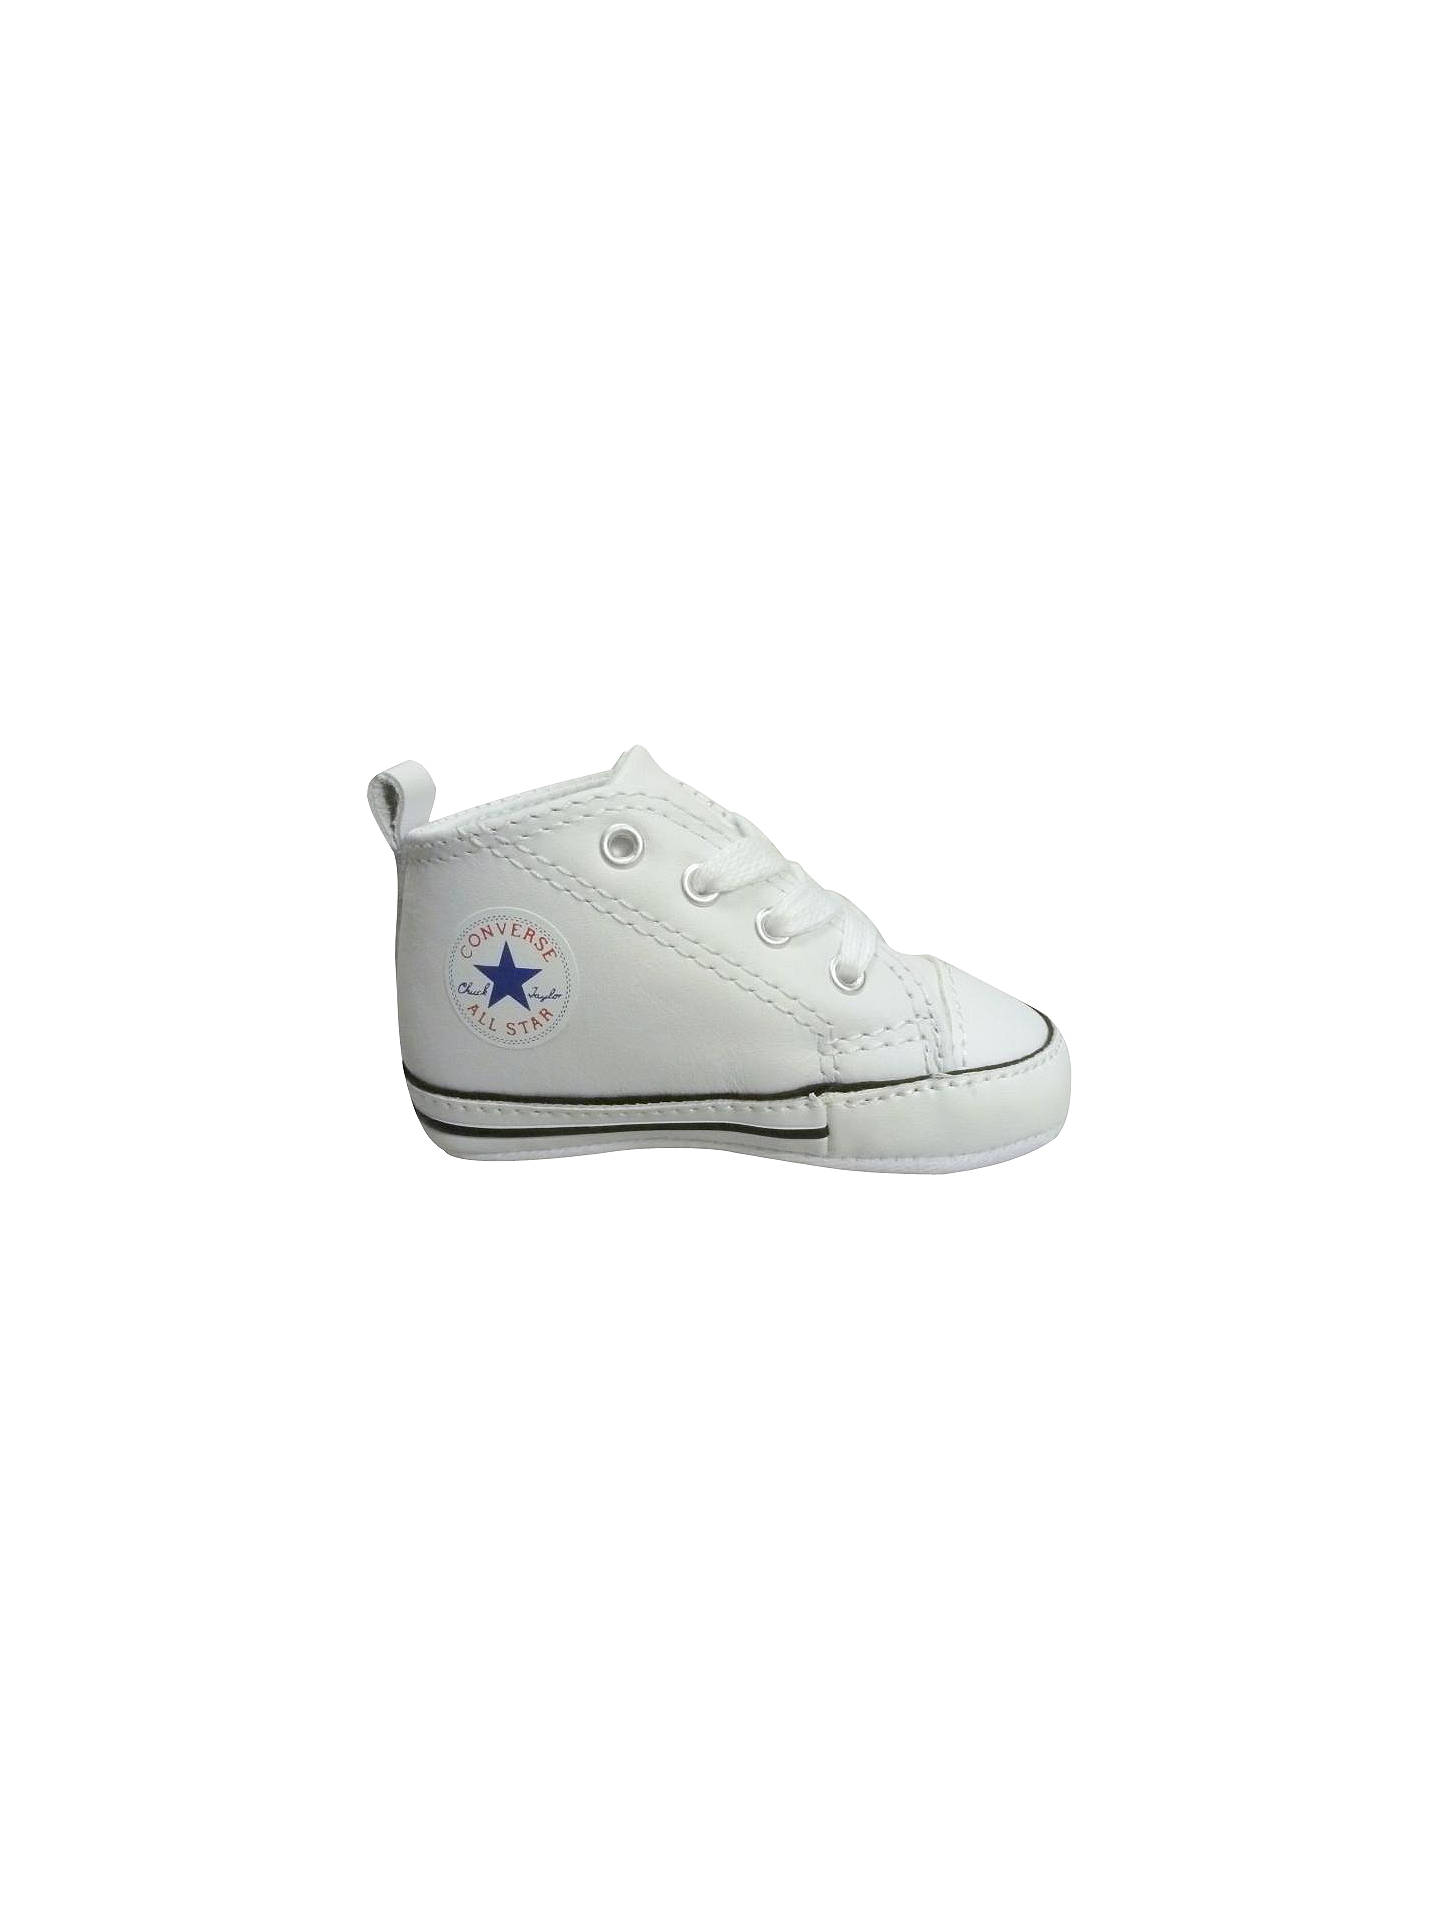 fea97a41c84b Converse Children s First Star Trainers at John Lewis   Partners